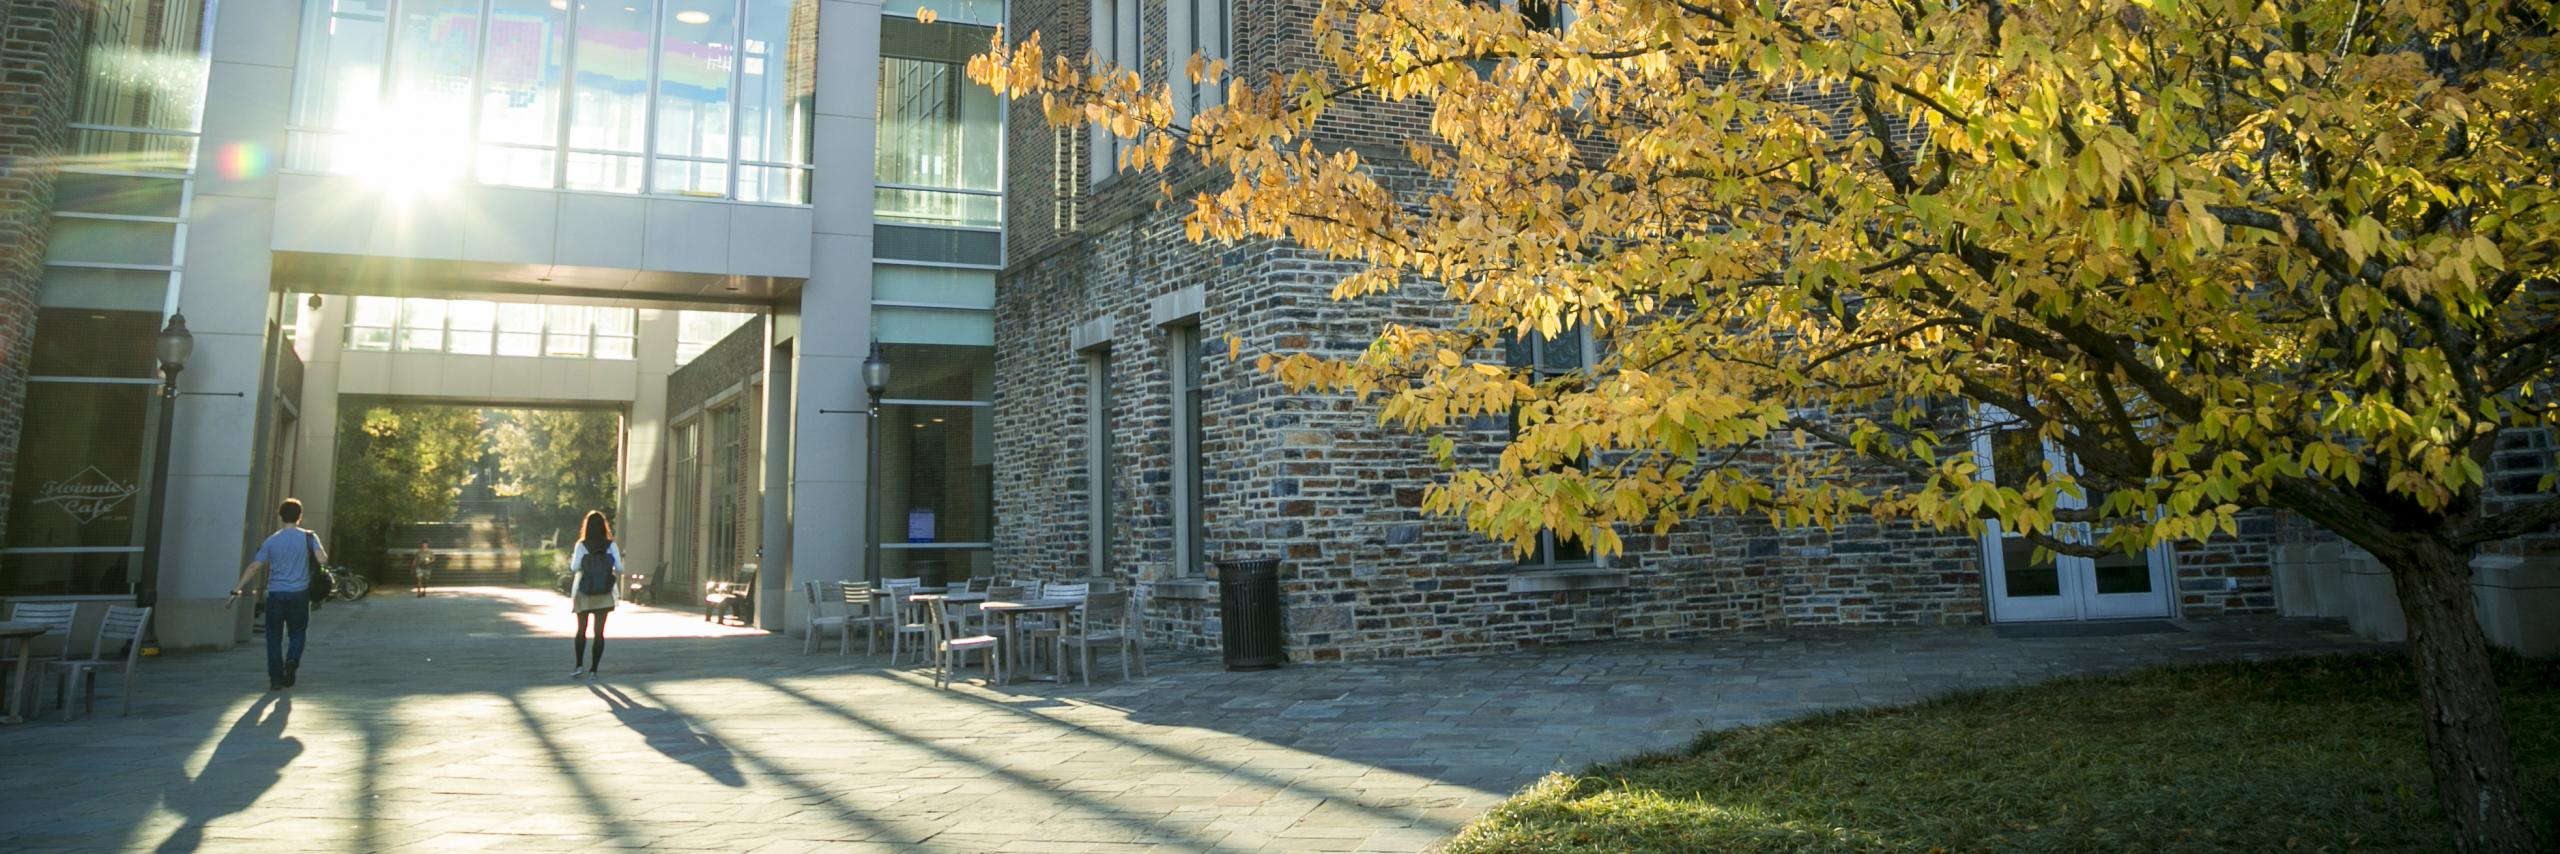 exterior of Fitzpatrick Center with fall trees